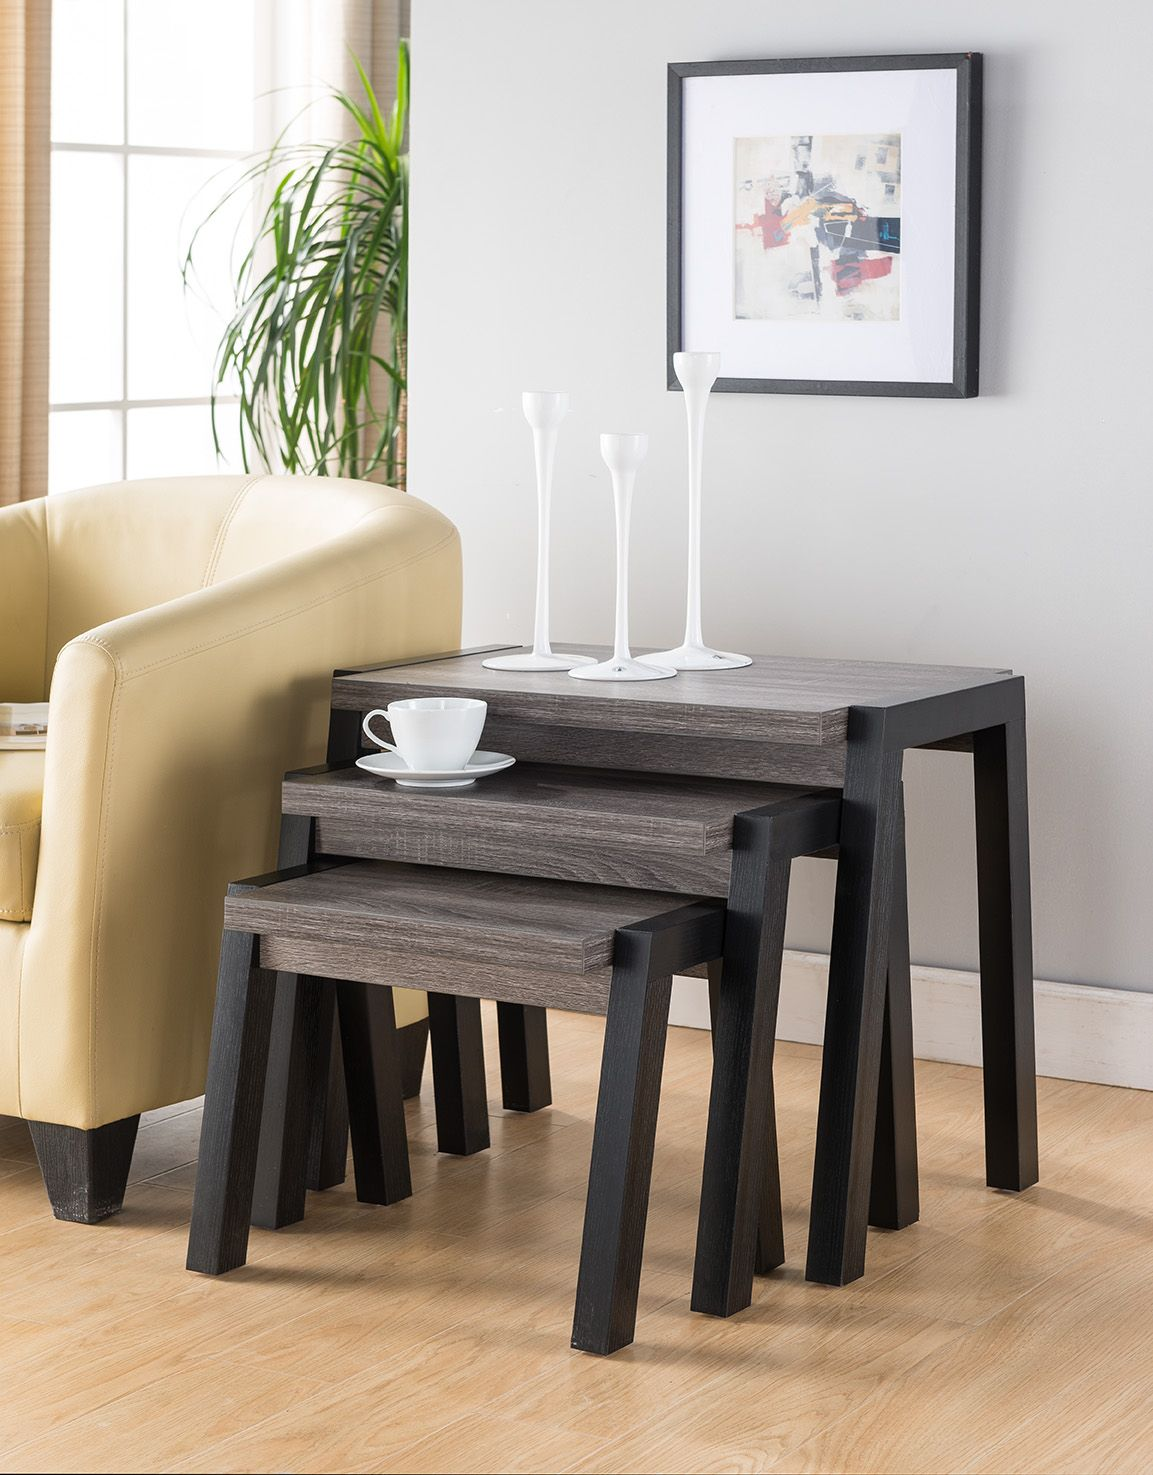 161610X3 Smart Home Black & Distressed Grey Chairside End